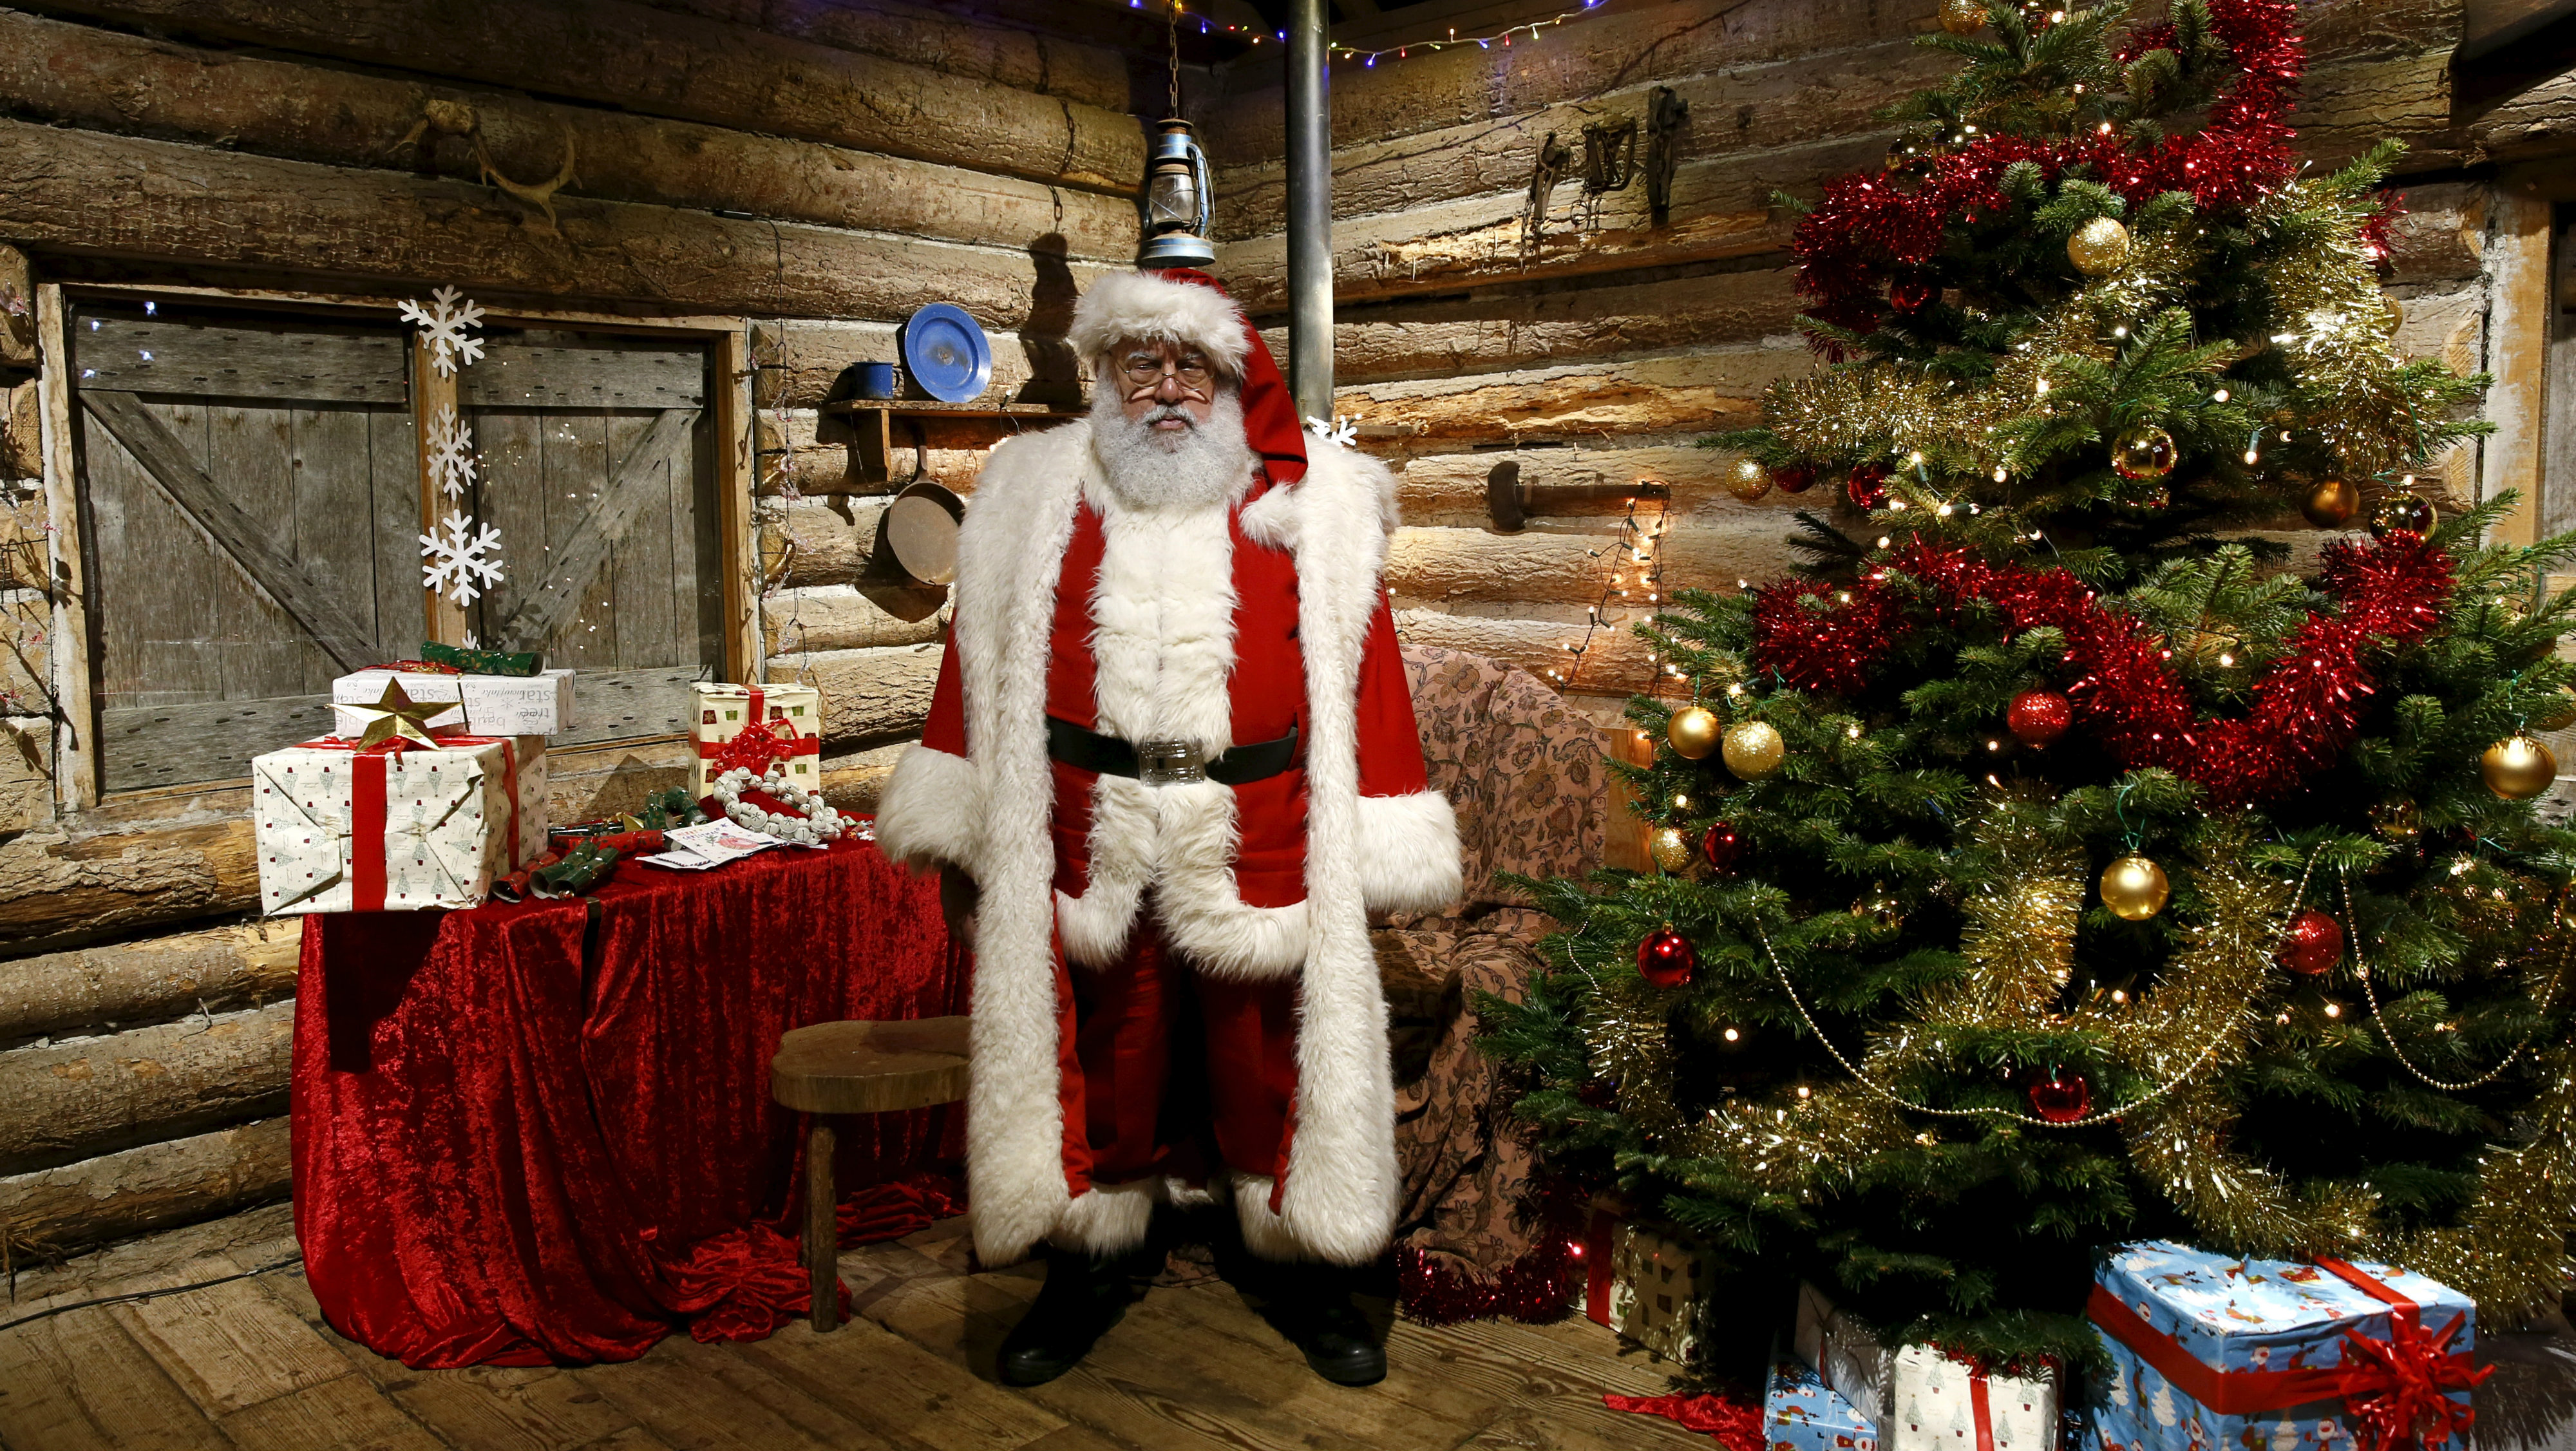 Actor John Field, dressed as Santa Claus, poses for a photograph at a Christmas grotto at the Wetland Centre in west London, Britain, December 5, 2015.